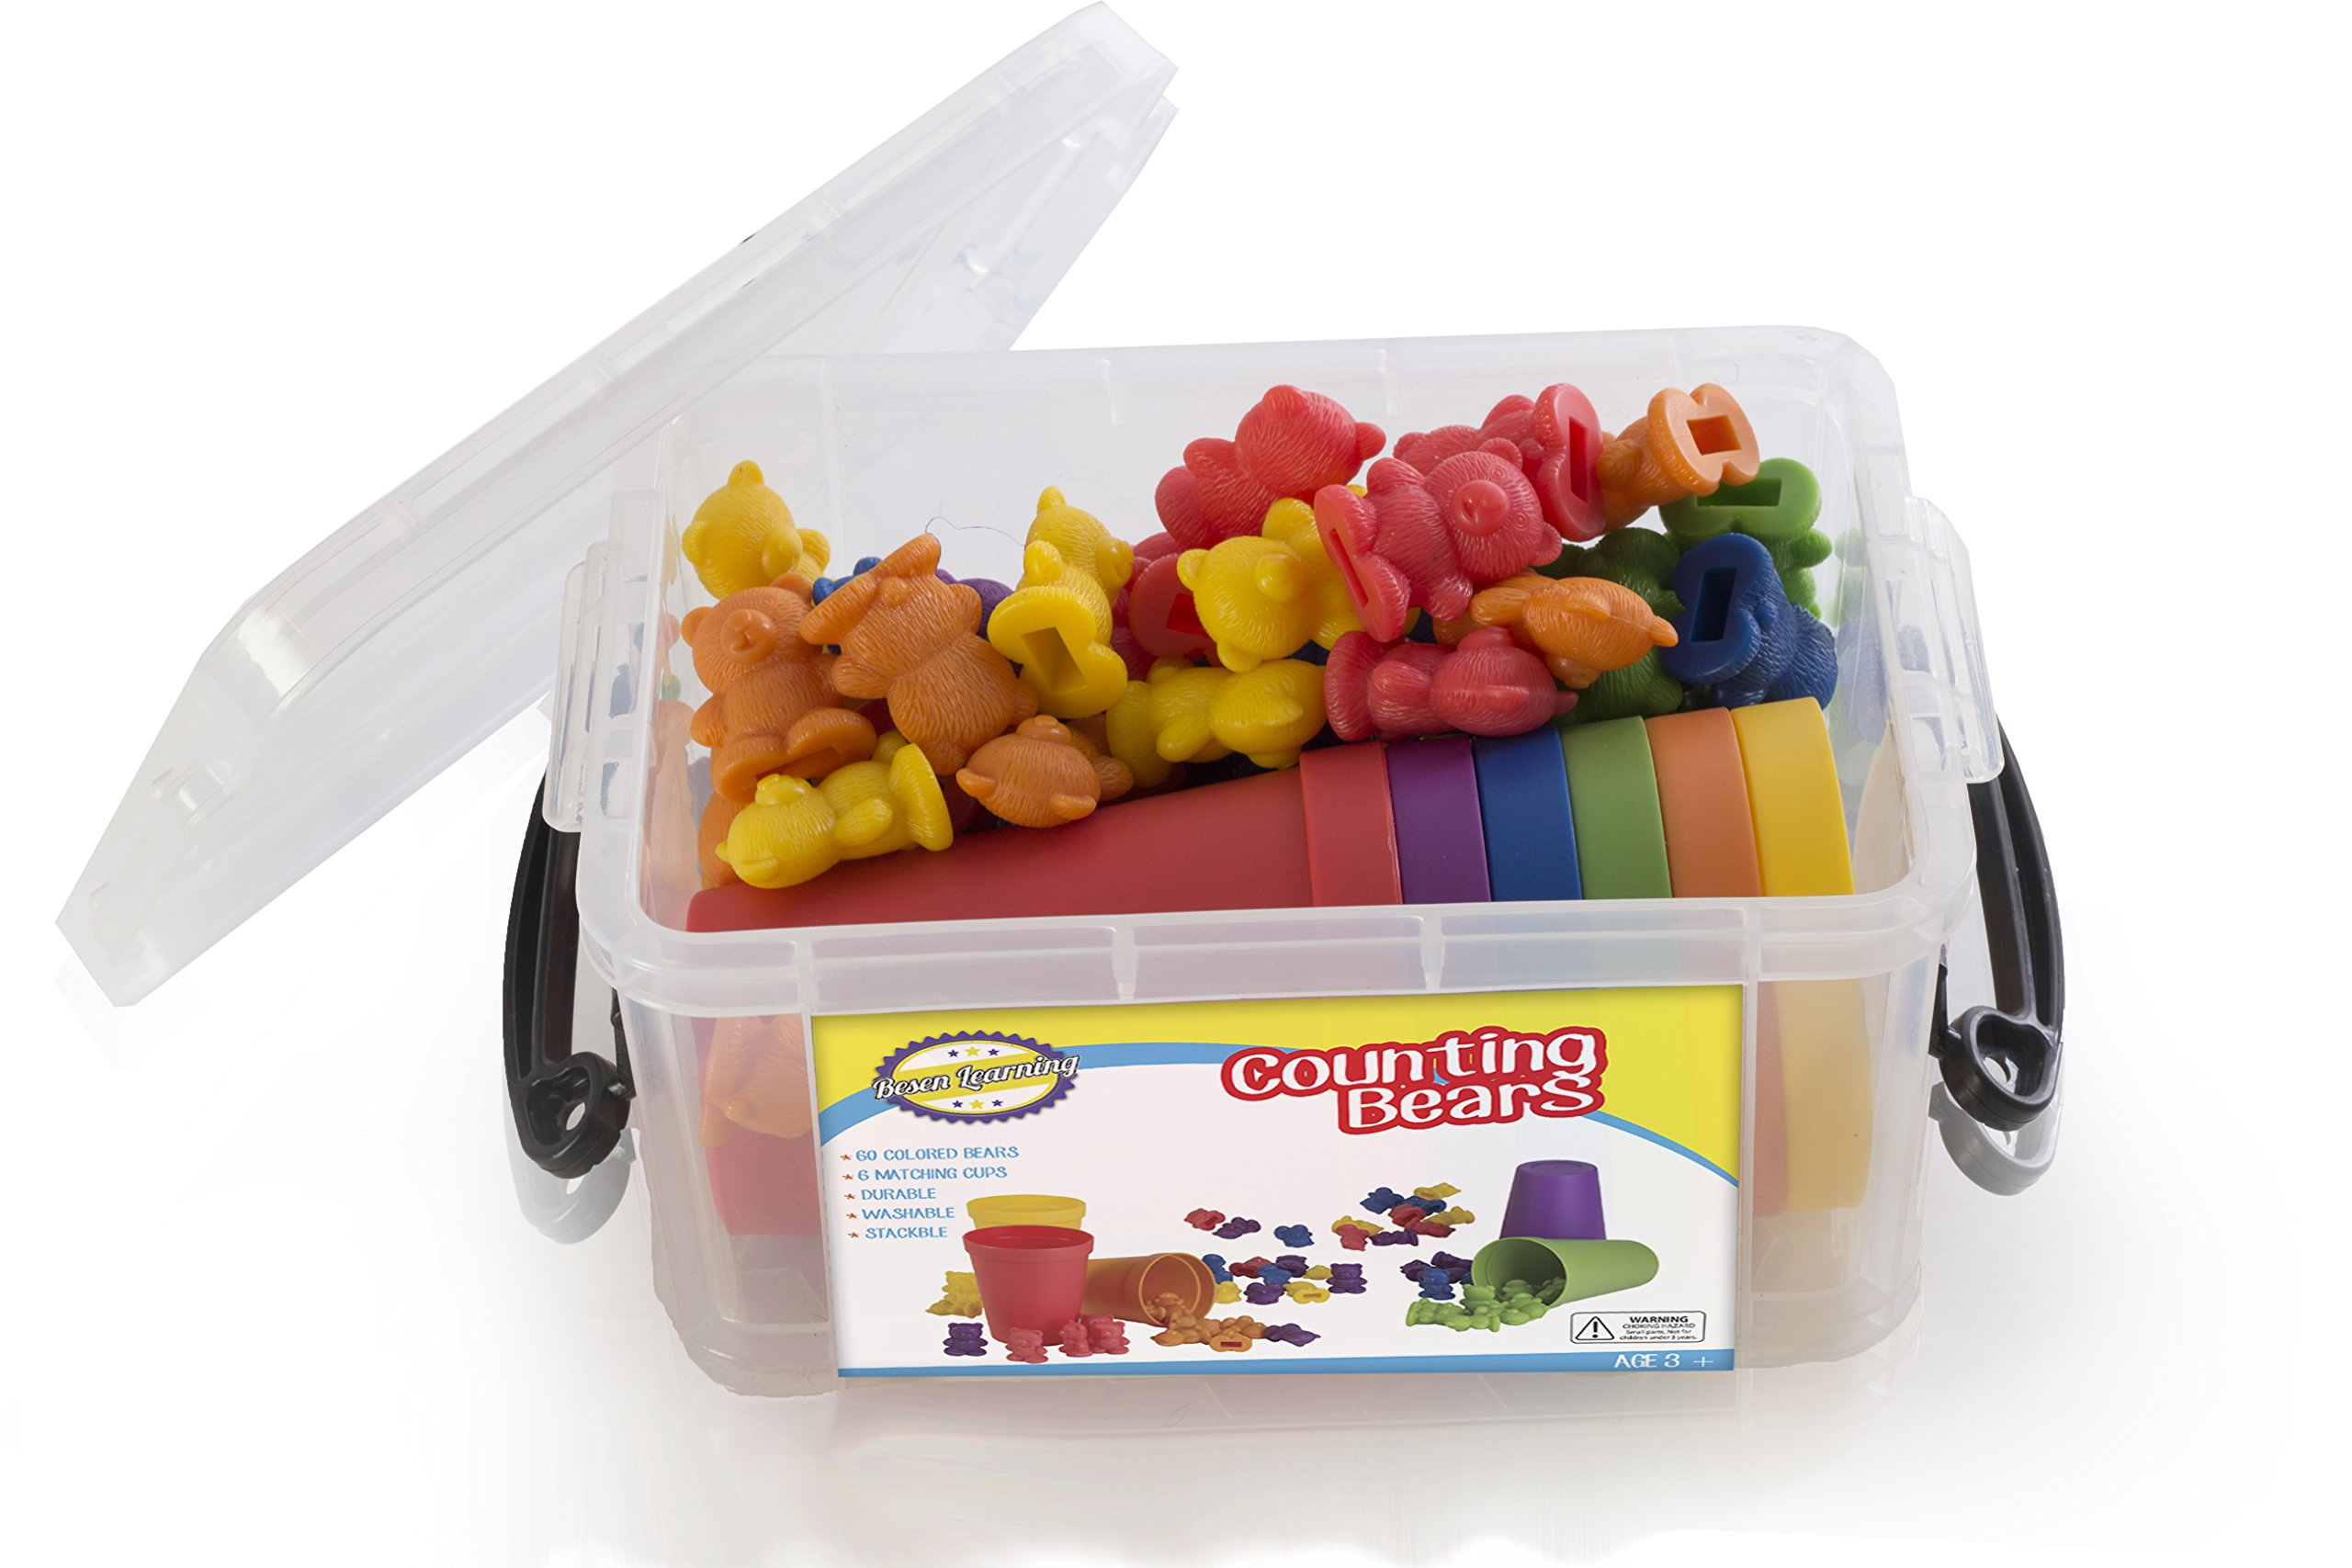 Counting Bears Toy Set with Matching Sorting Cups in Storage case – Best Fun Educational Toy for Kids Ages 3 and up - for Learning, STEM Education, Mathematics, Counting & Sorting Toys